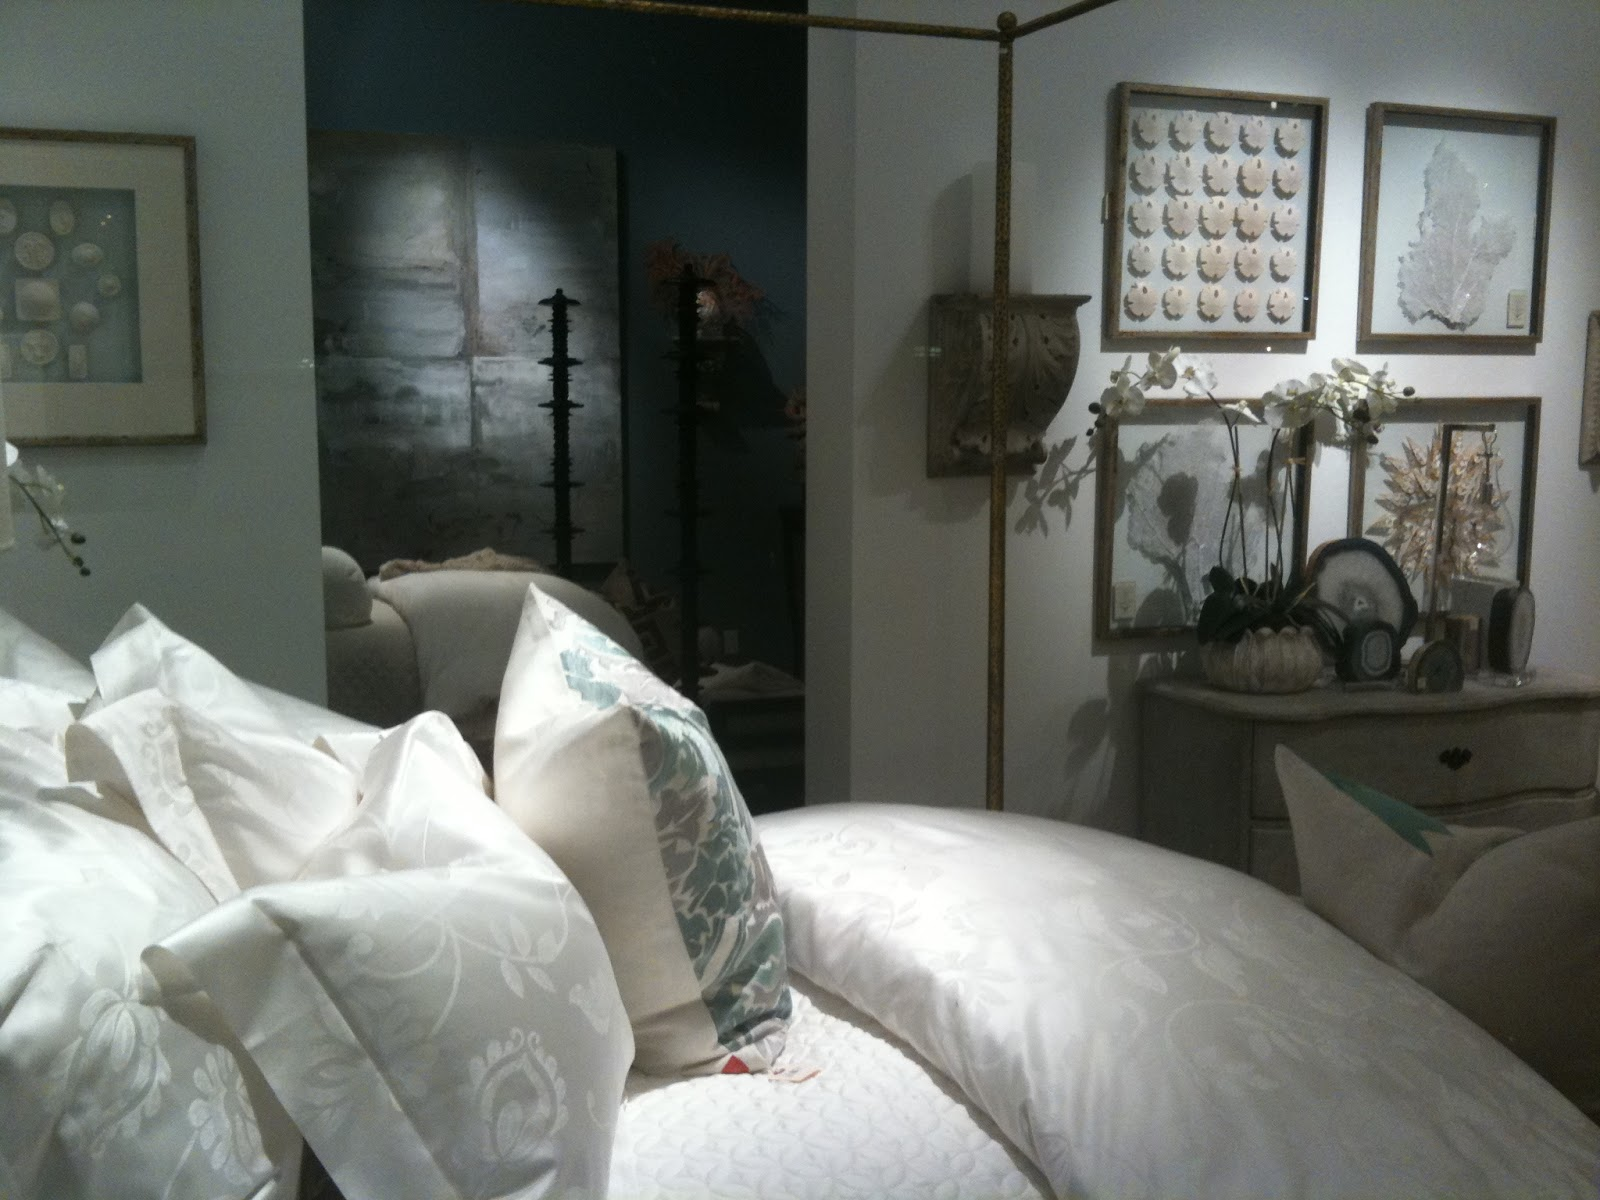 new storefront bliss home amp design mill valley florals navjyoth s blog just another wordpress com site